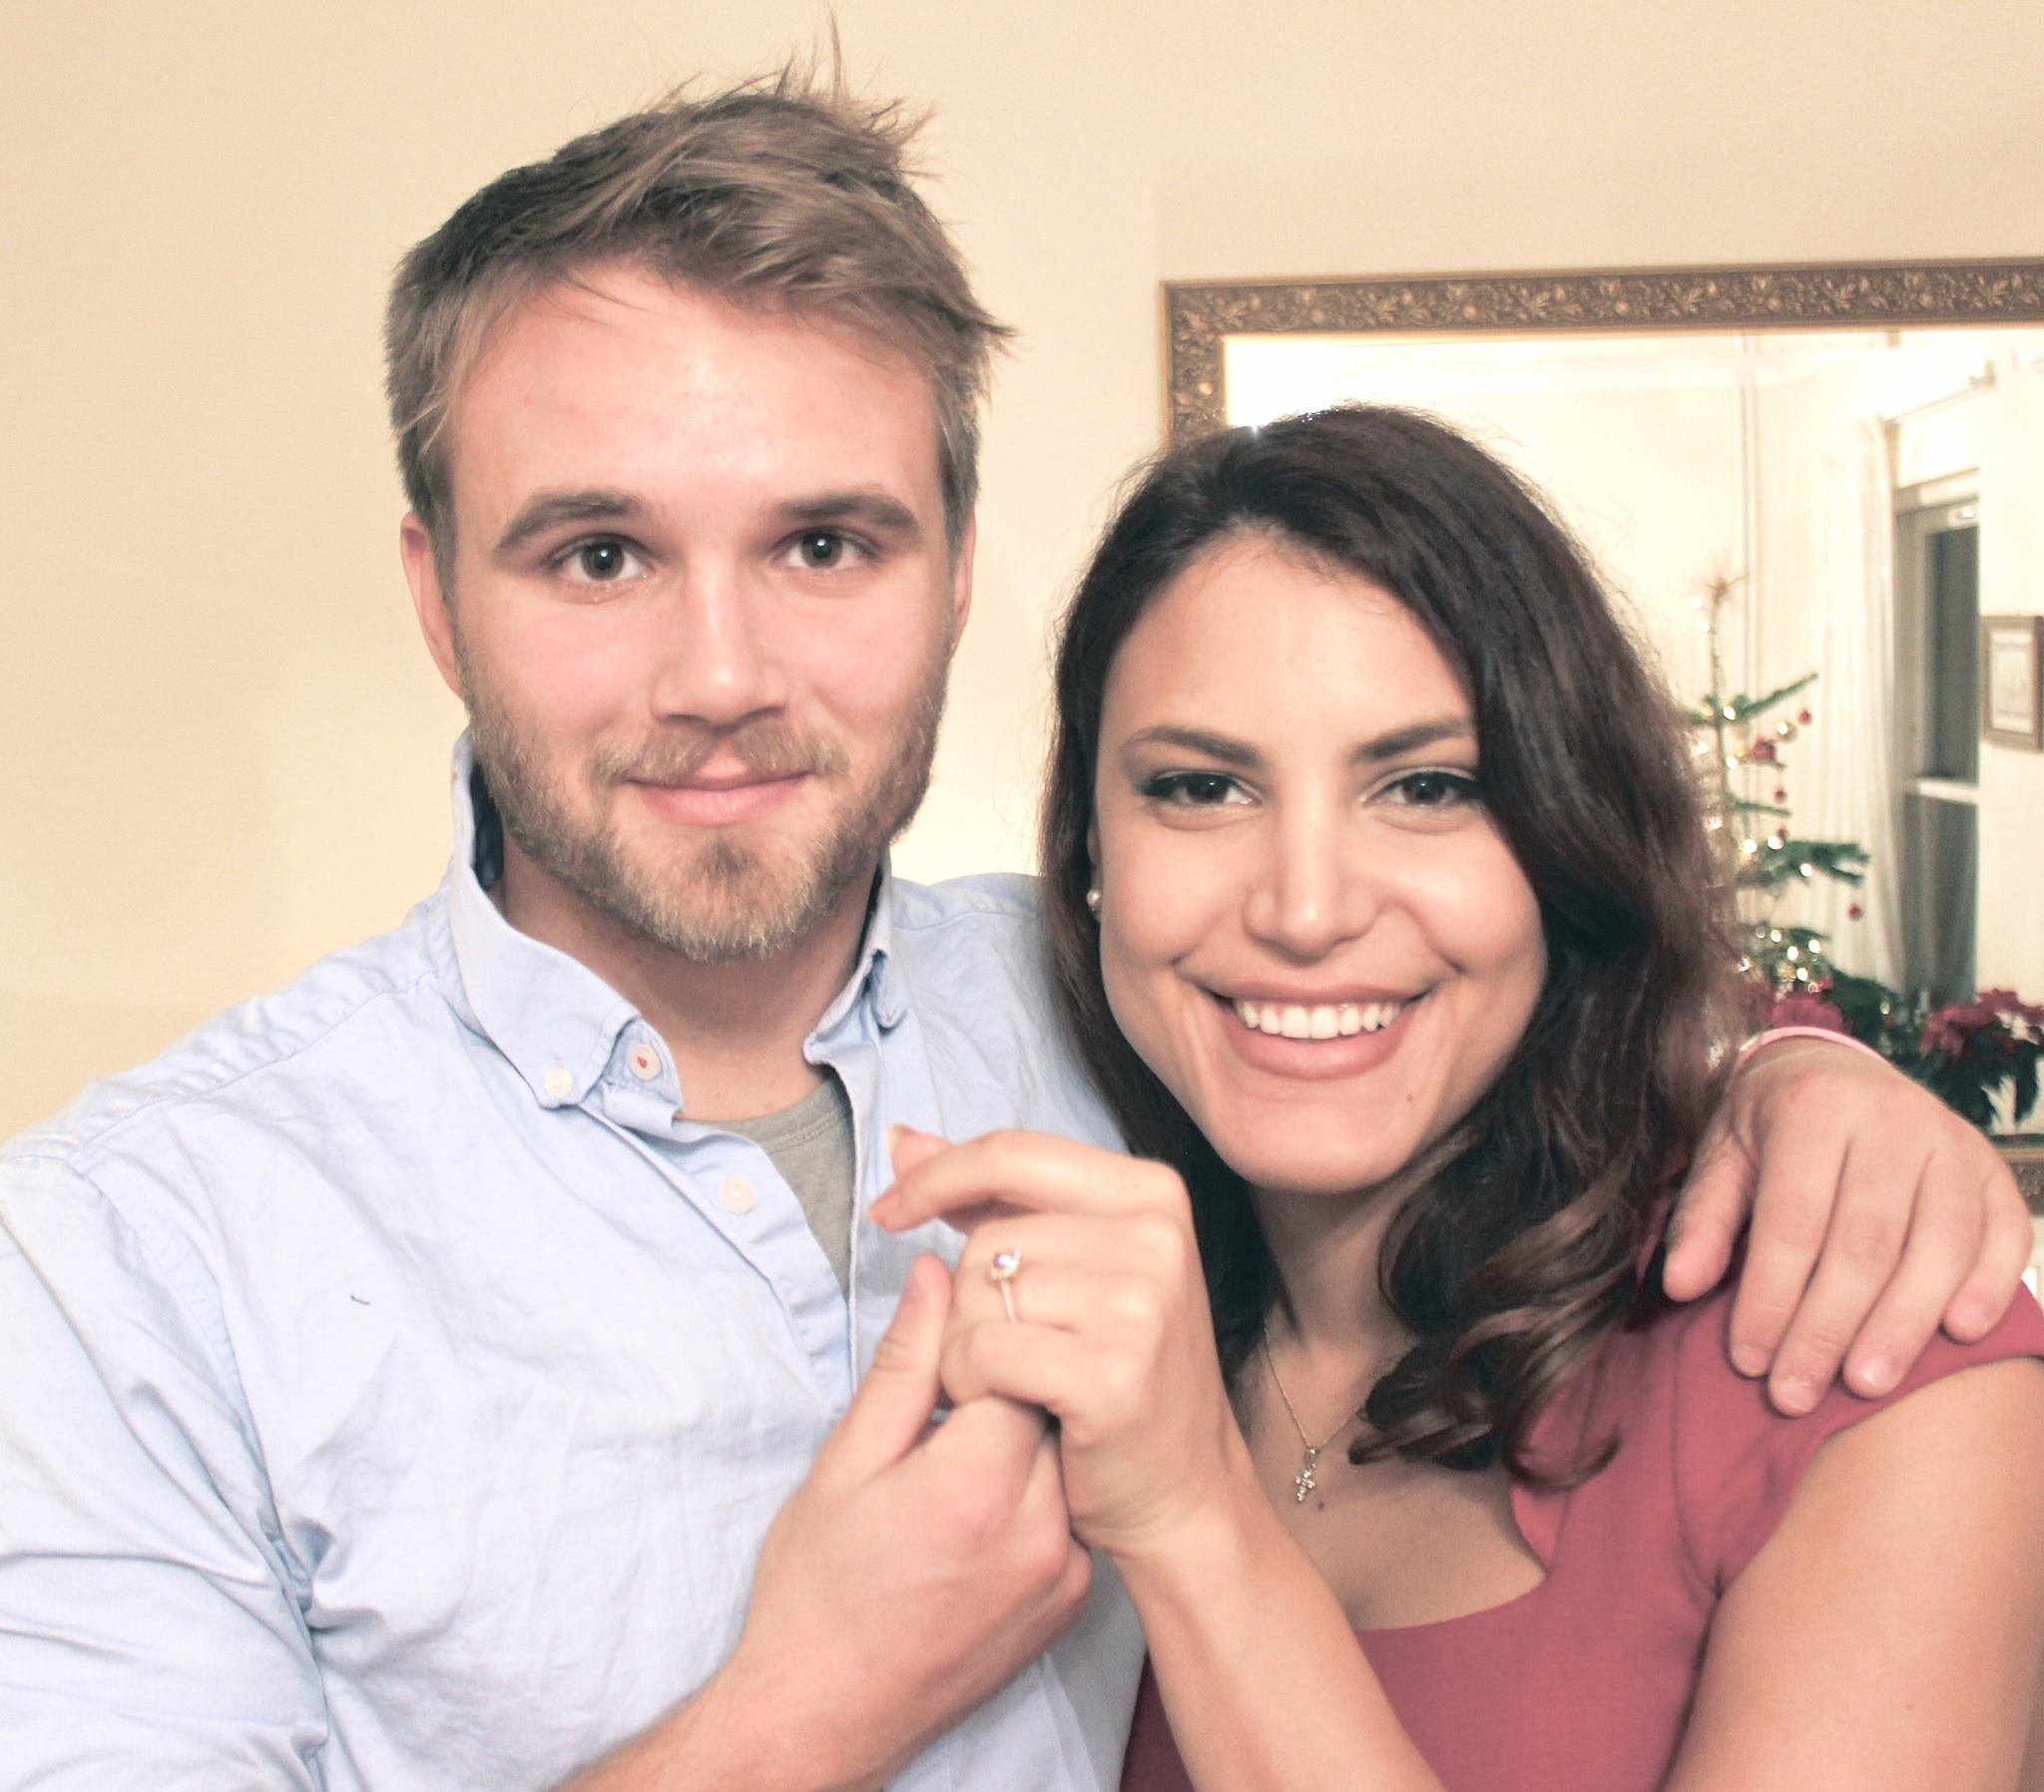 Cute Engaged Couple